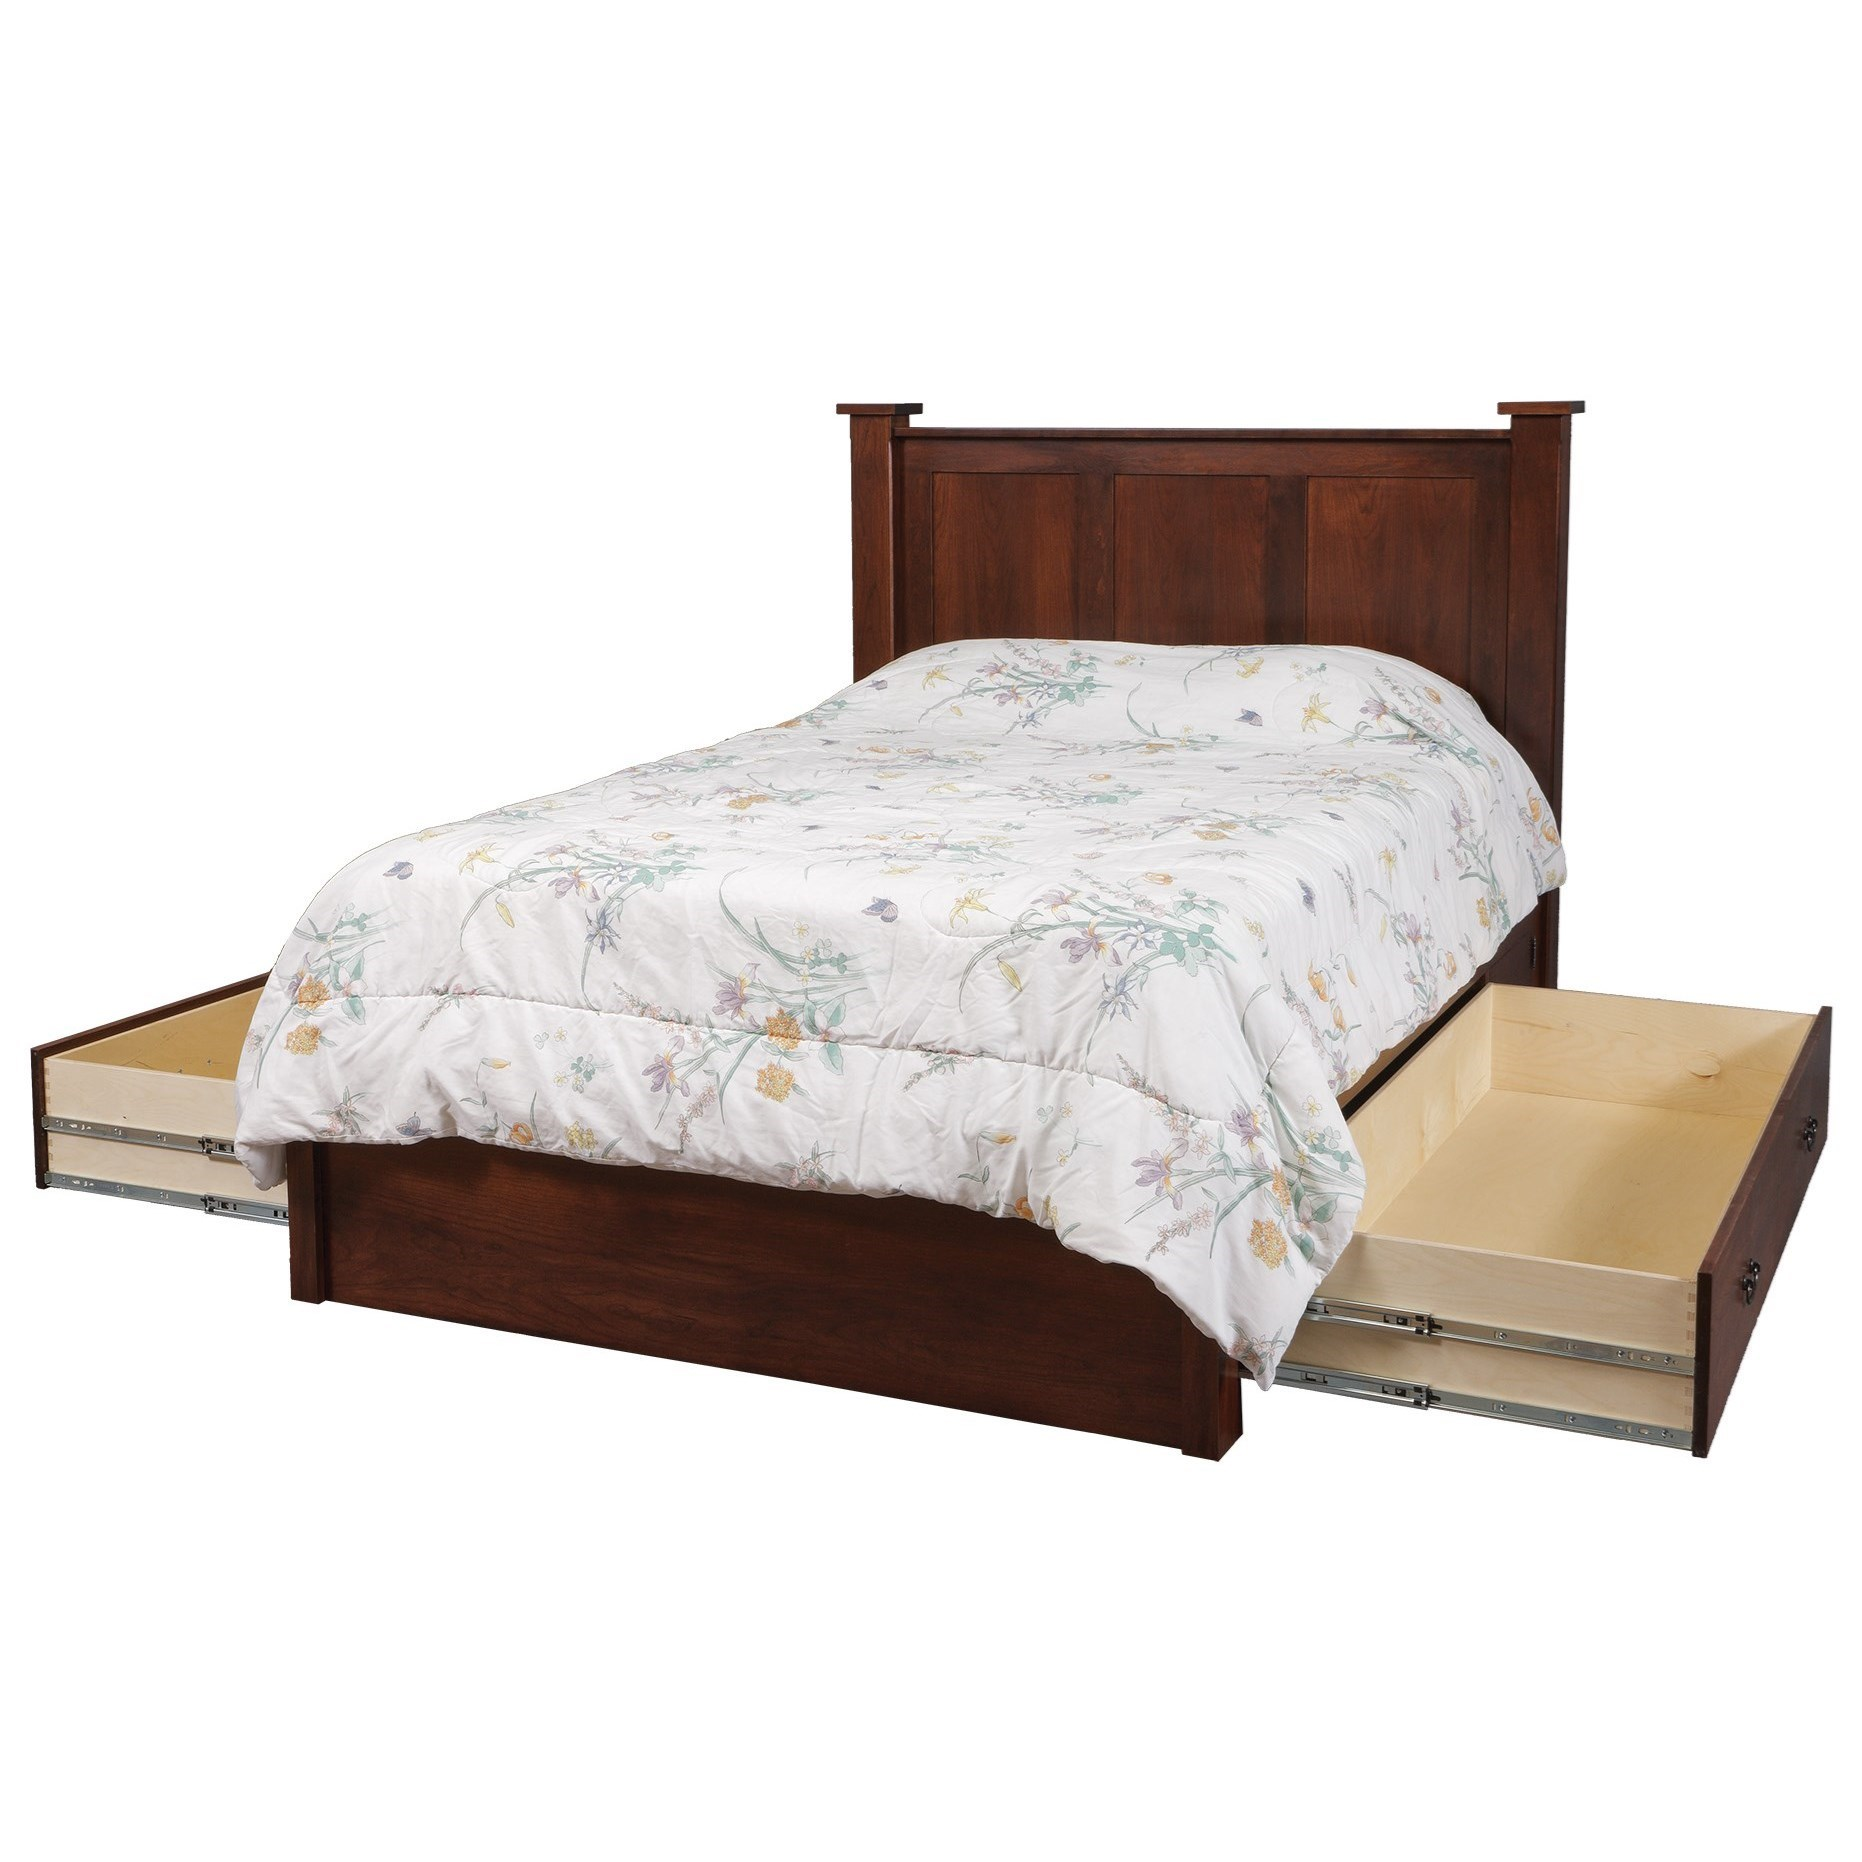 California King Pedestal Bed W 60 Storage Drawer On Each